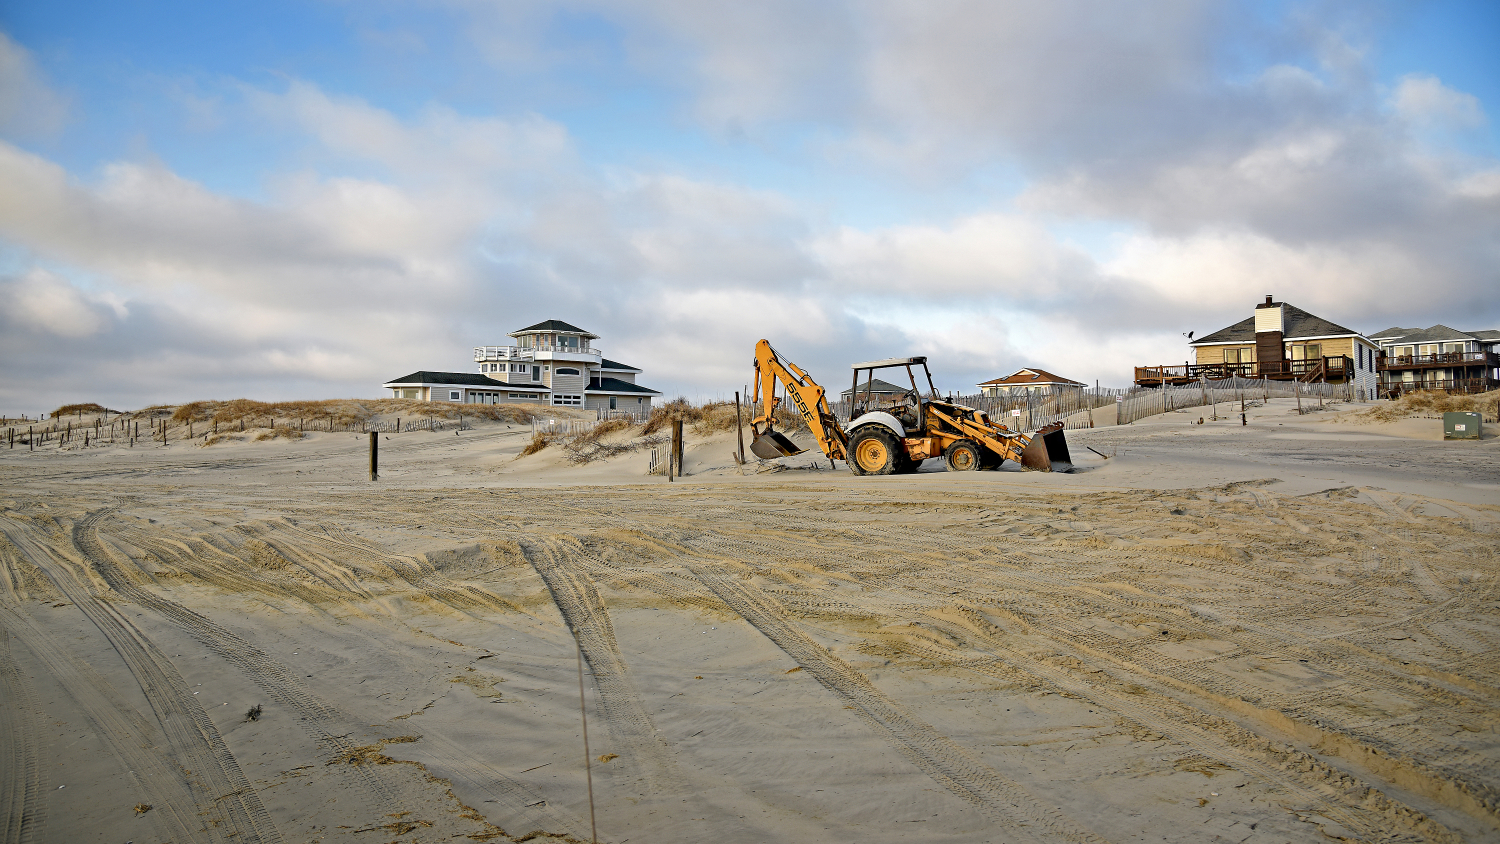 Sand gets moved around to protect further dune erosion along the beach at Carova.